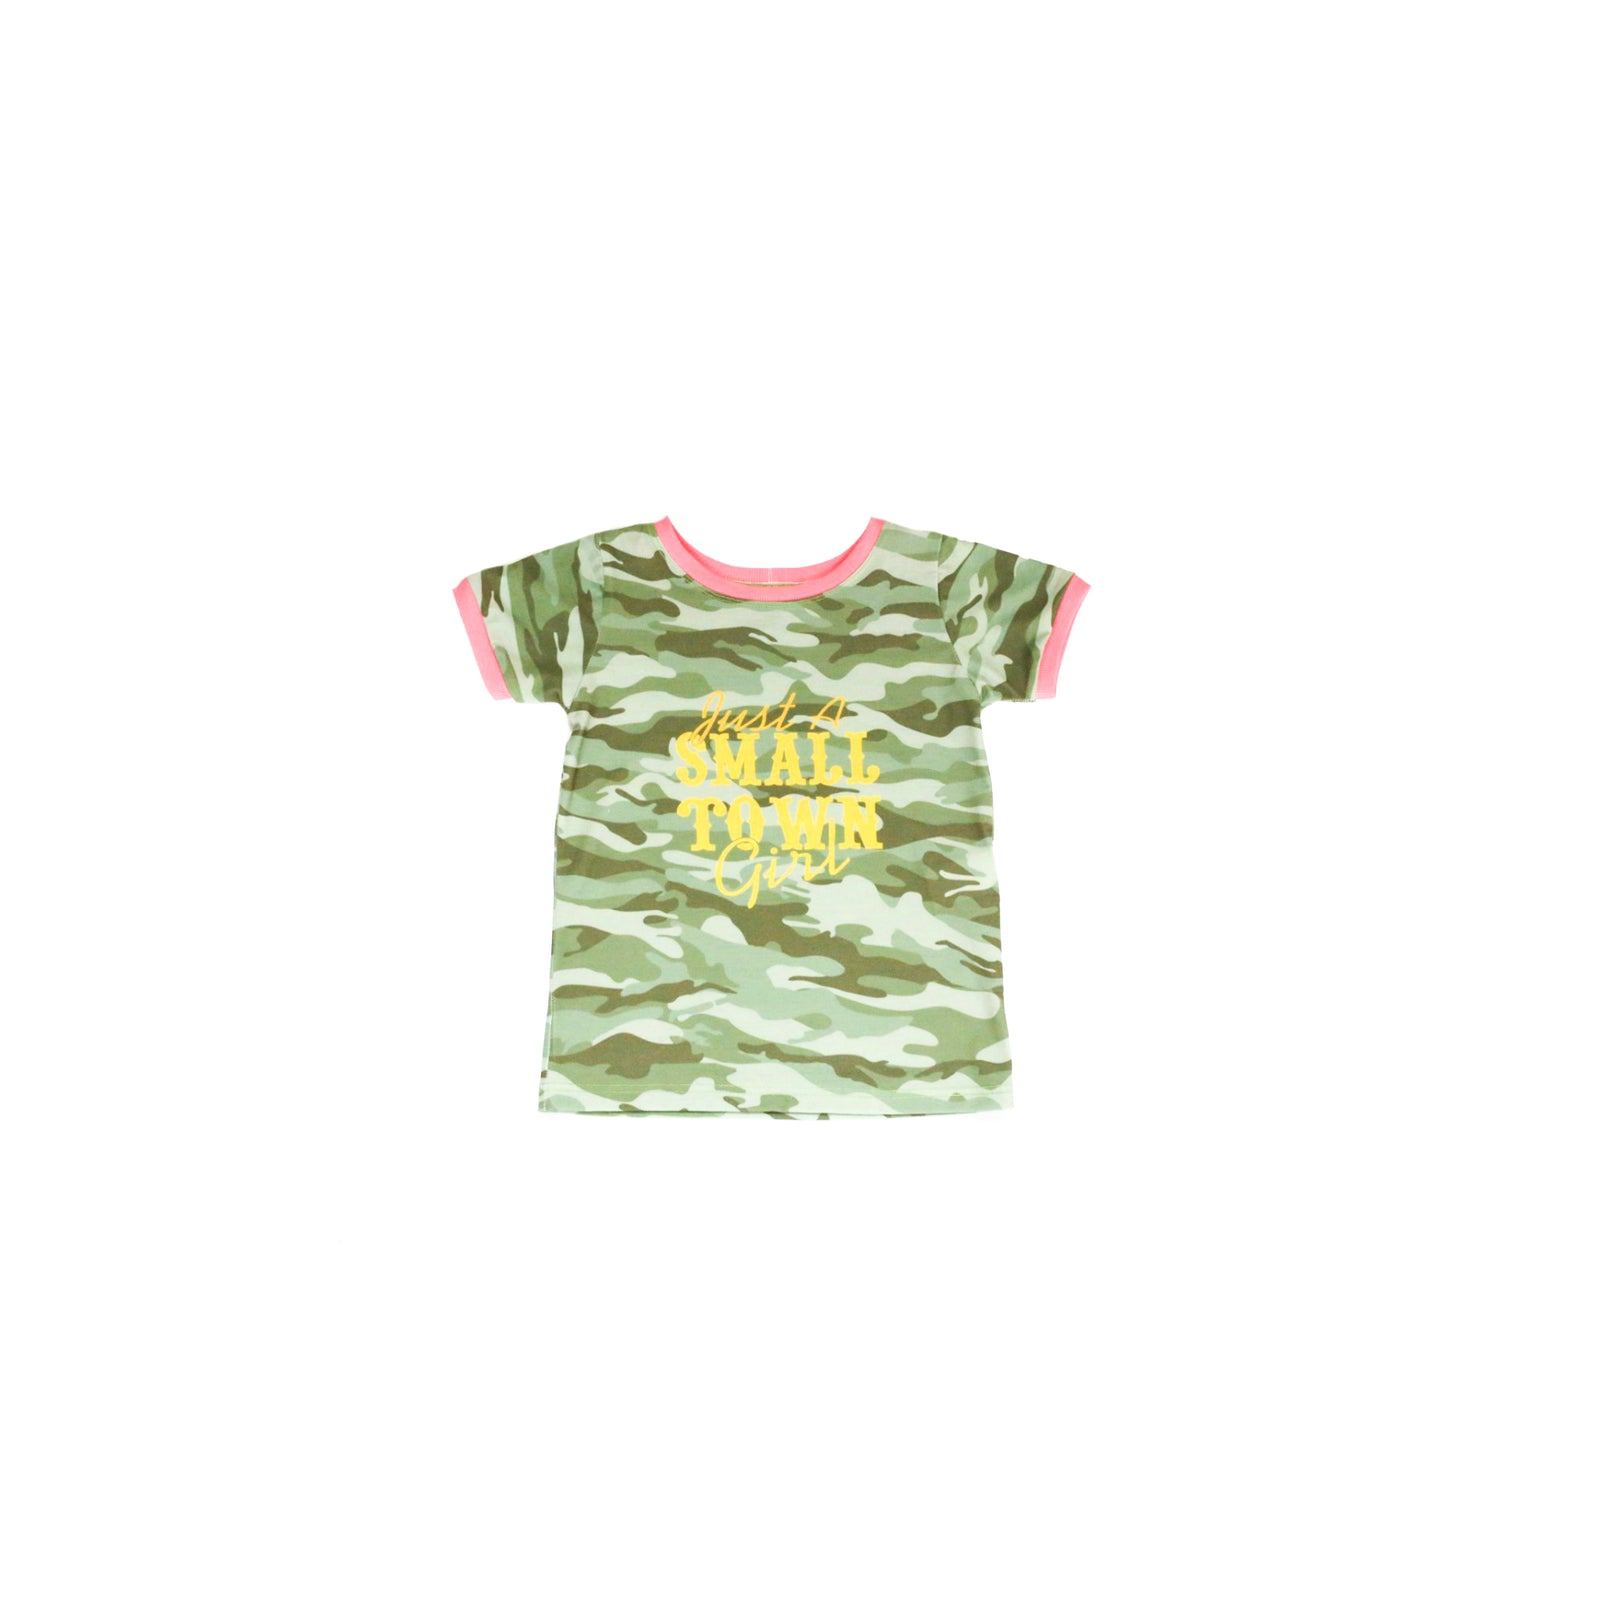 TWEEN 2020- Small Town Girl Short Sleeve Top